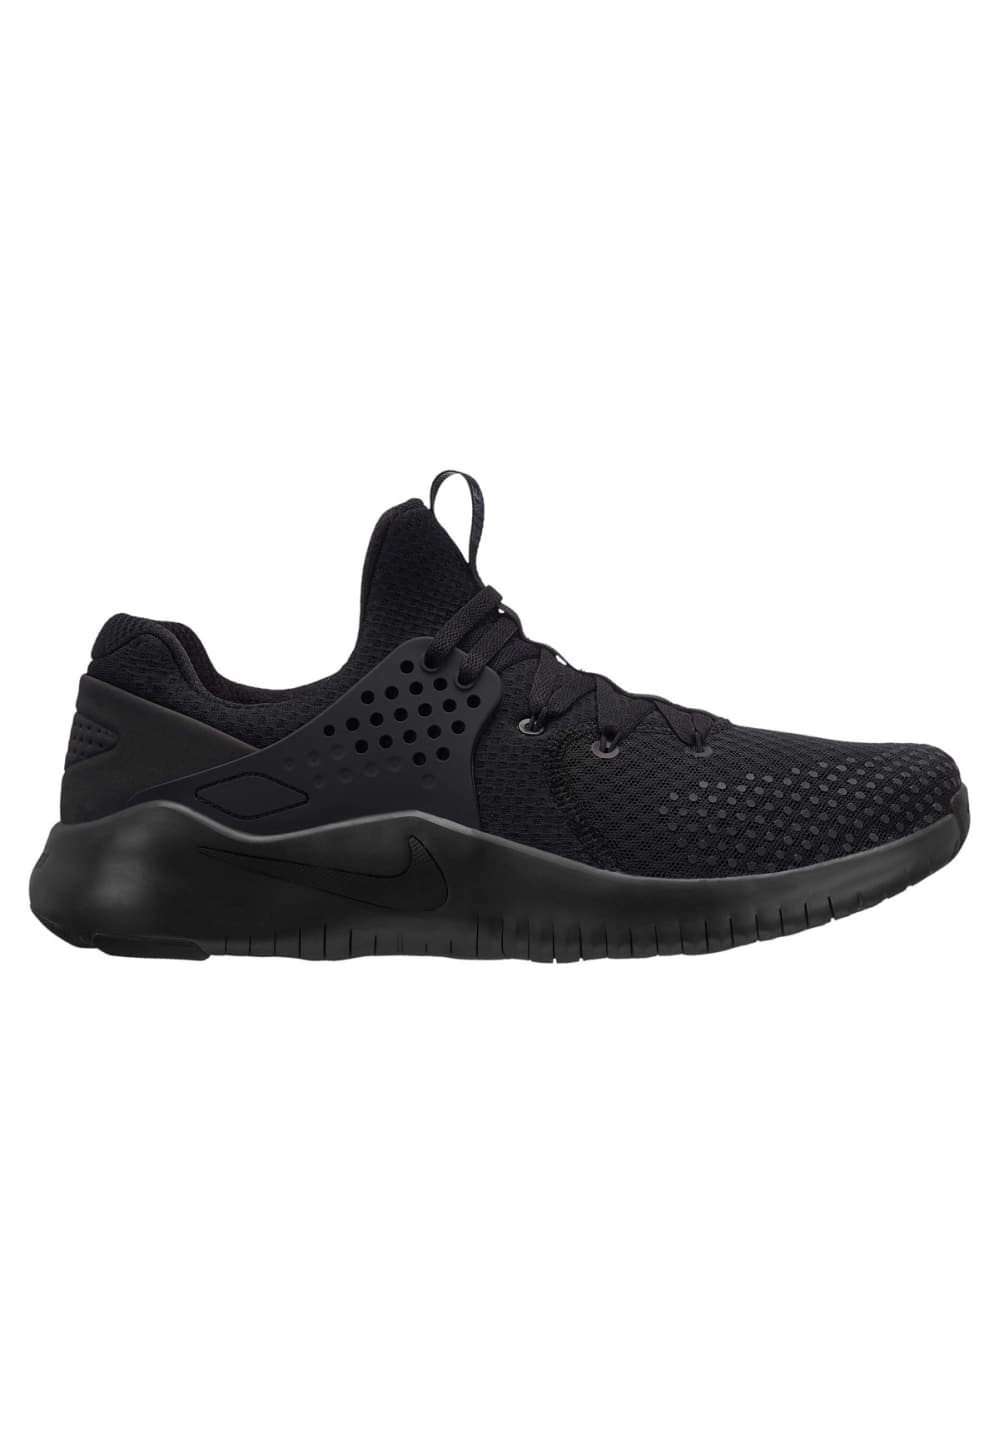 3c50cc8db1e ... Nike Free Trainer V8 - Fitness shoes for Men - Black. Back to Overview.  1; 2. Previous